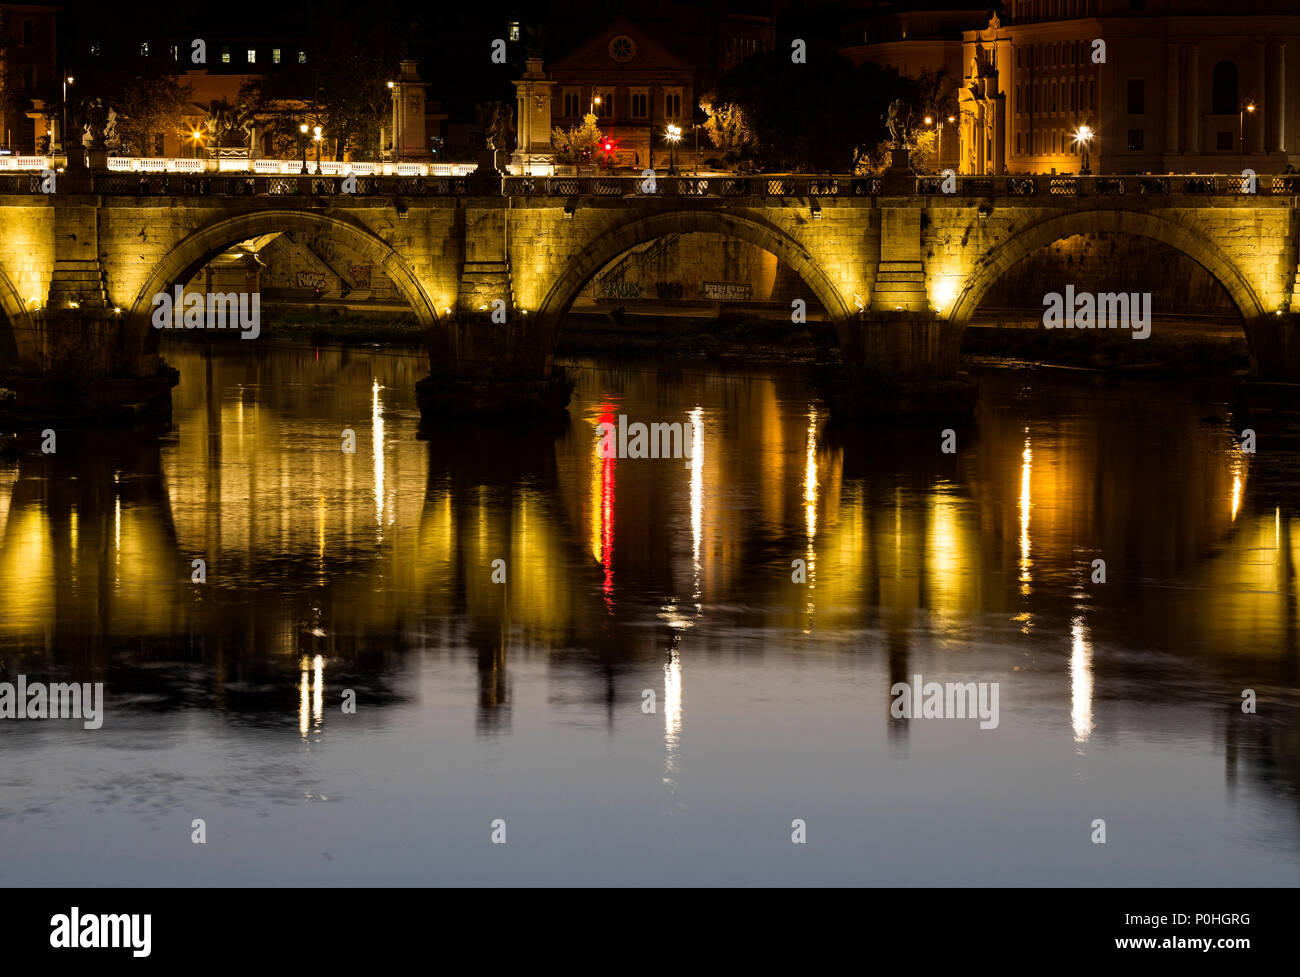 The lights from the Ponte Vittorio Emanuele II bridge reflect in the Tibor River in Rome, Italy. - Stock Image